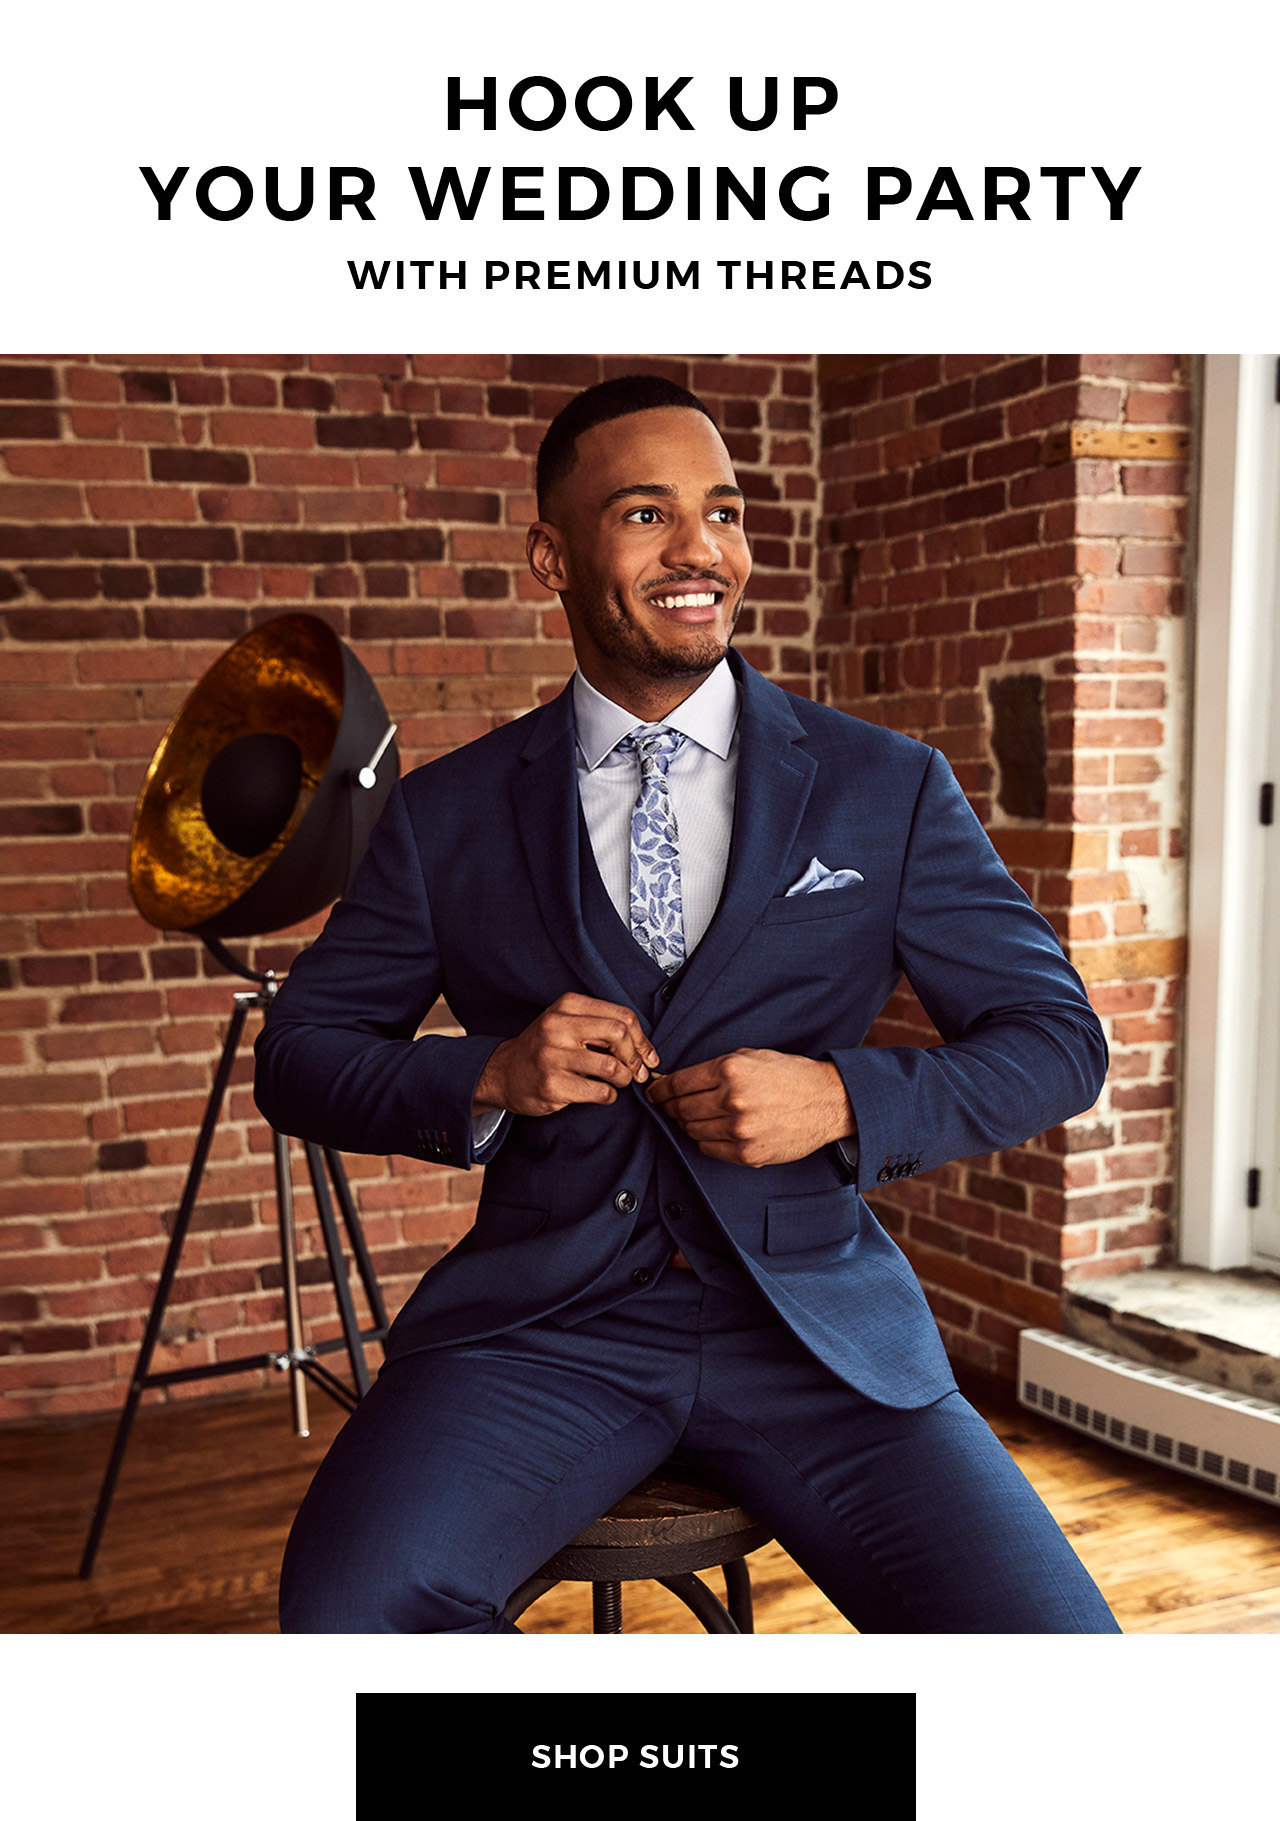 Hook up your wedding party with premium threads. Shop suits.